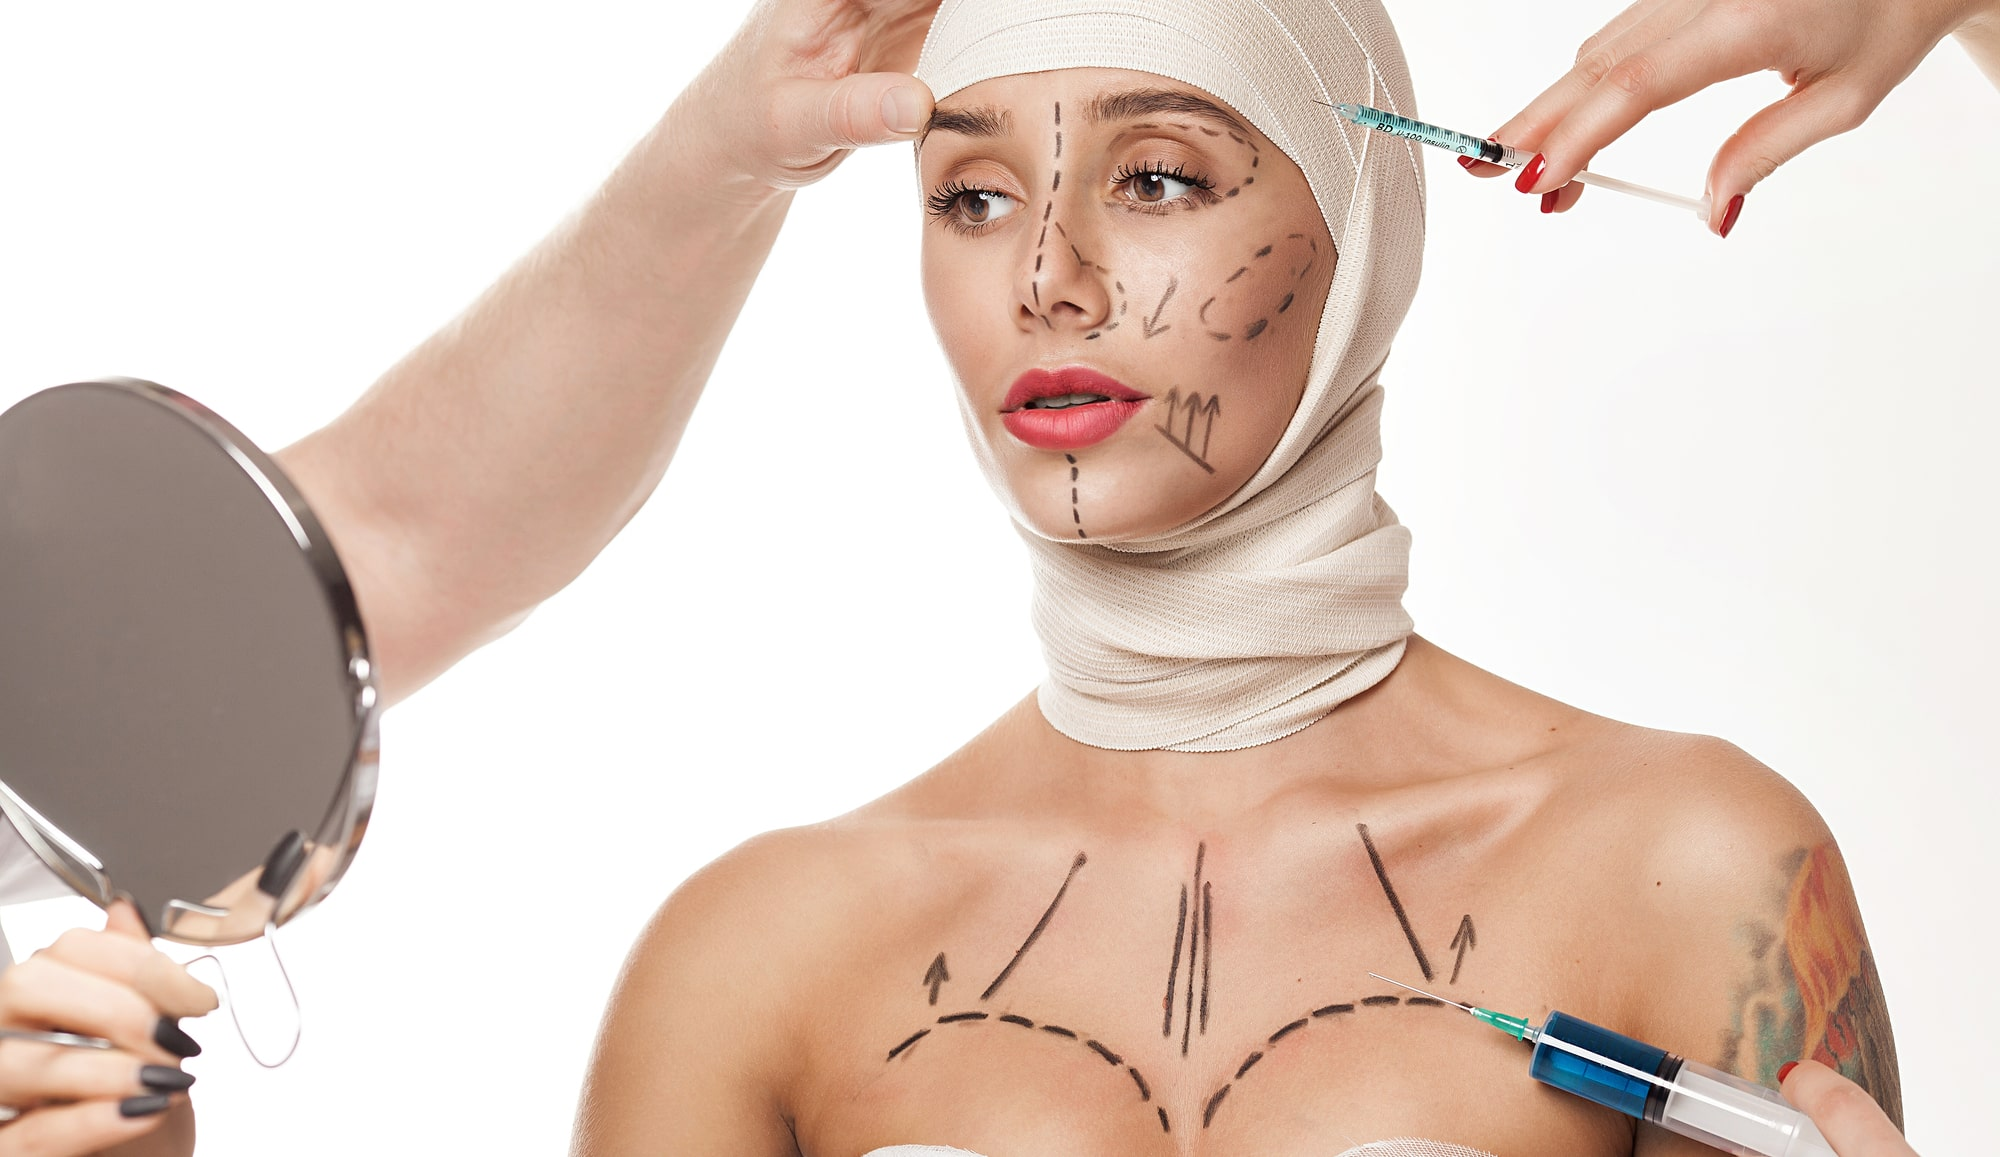 watch out in the field of plastic surgery